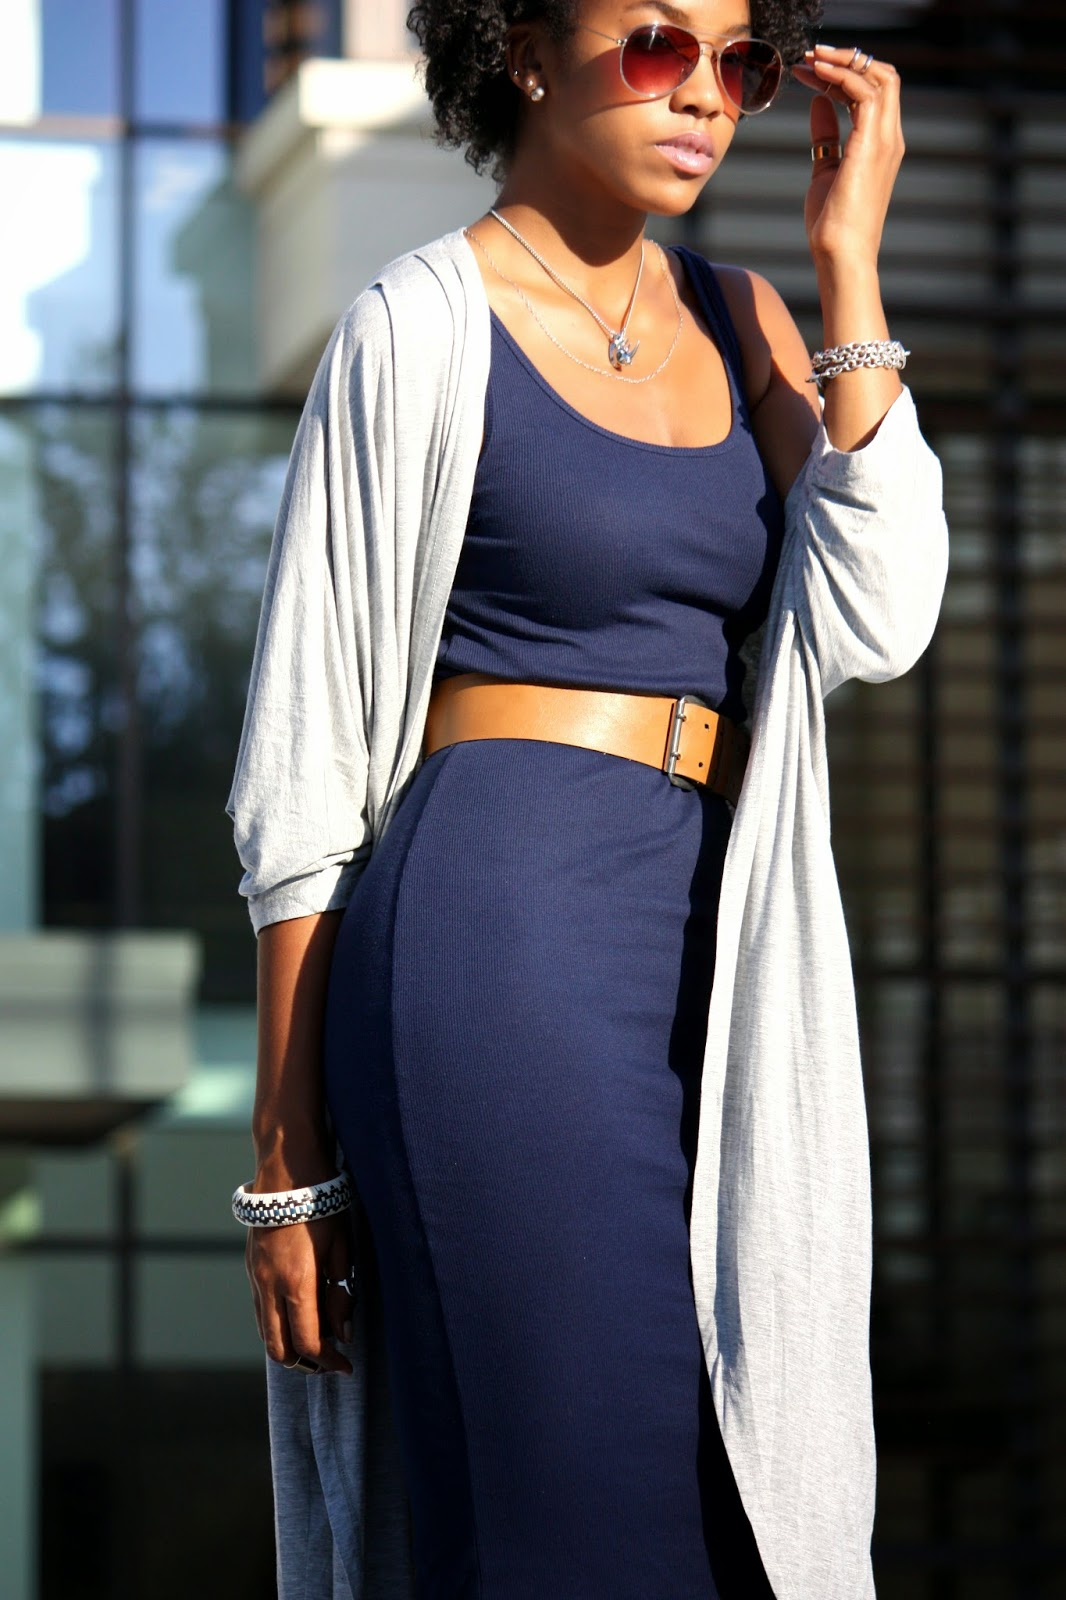 Wearing Topshop silver Rhino necklace and vintage leather belt